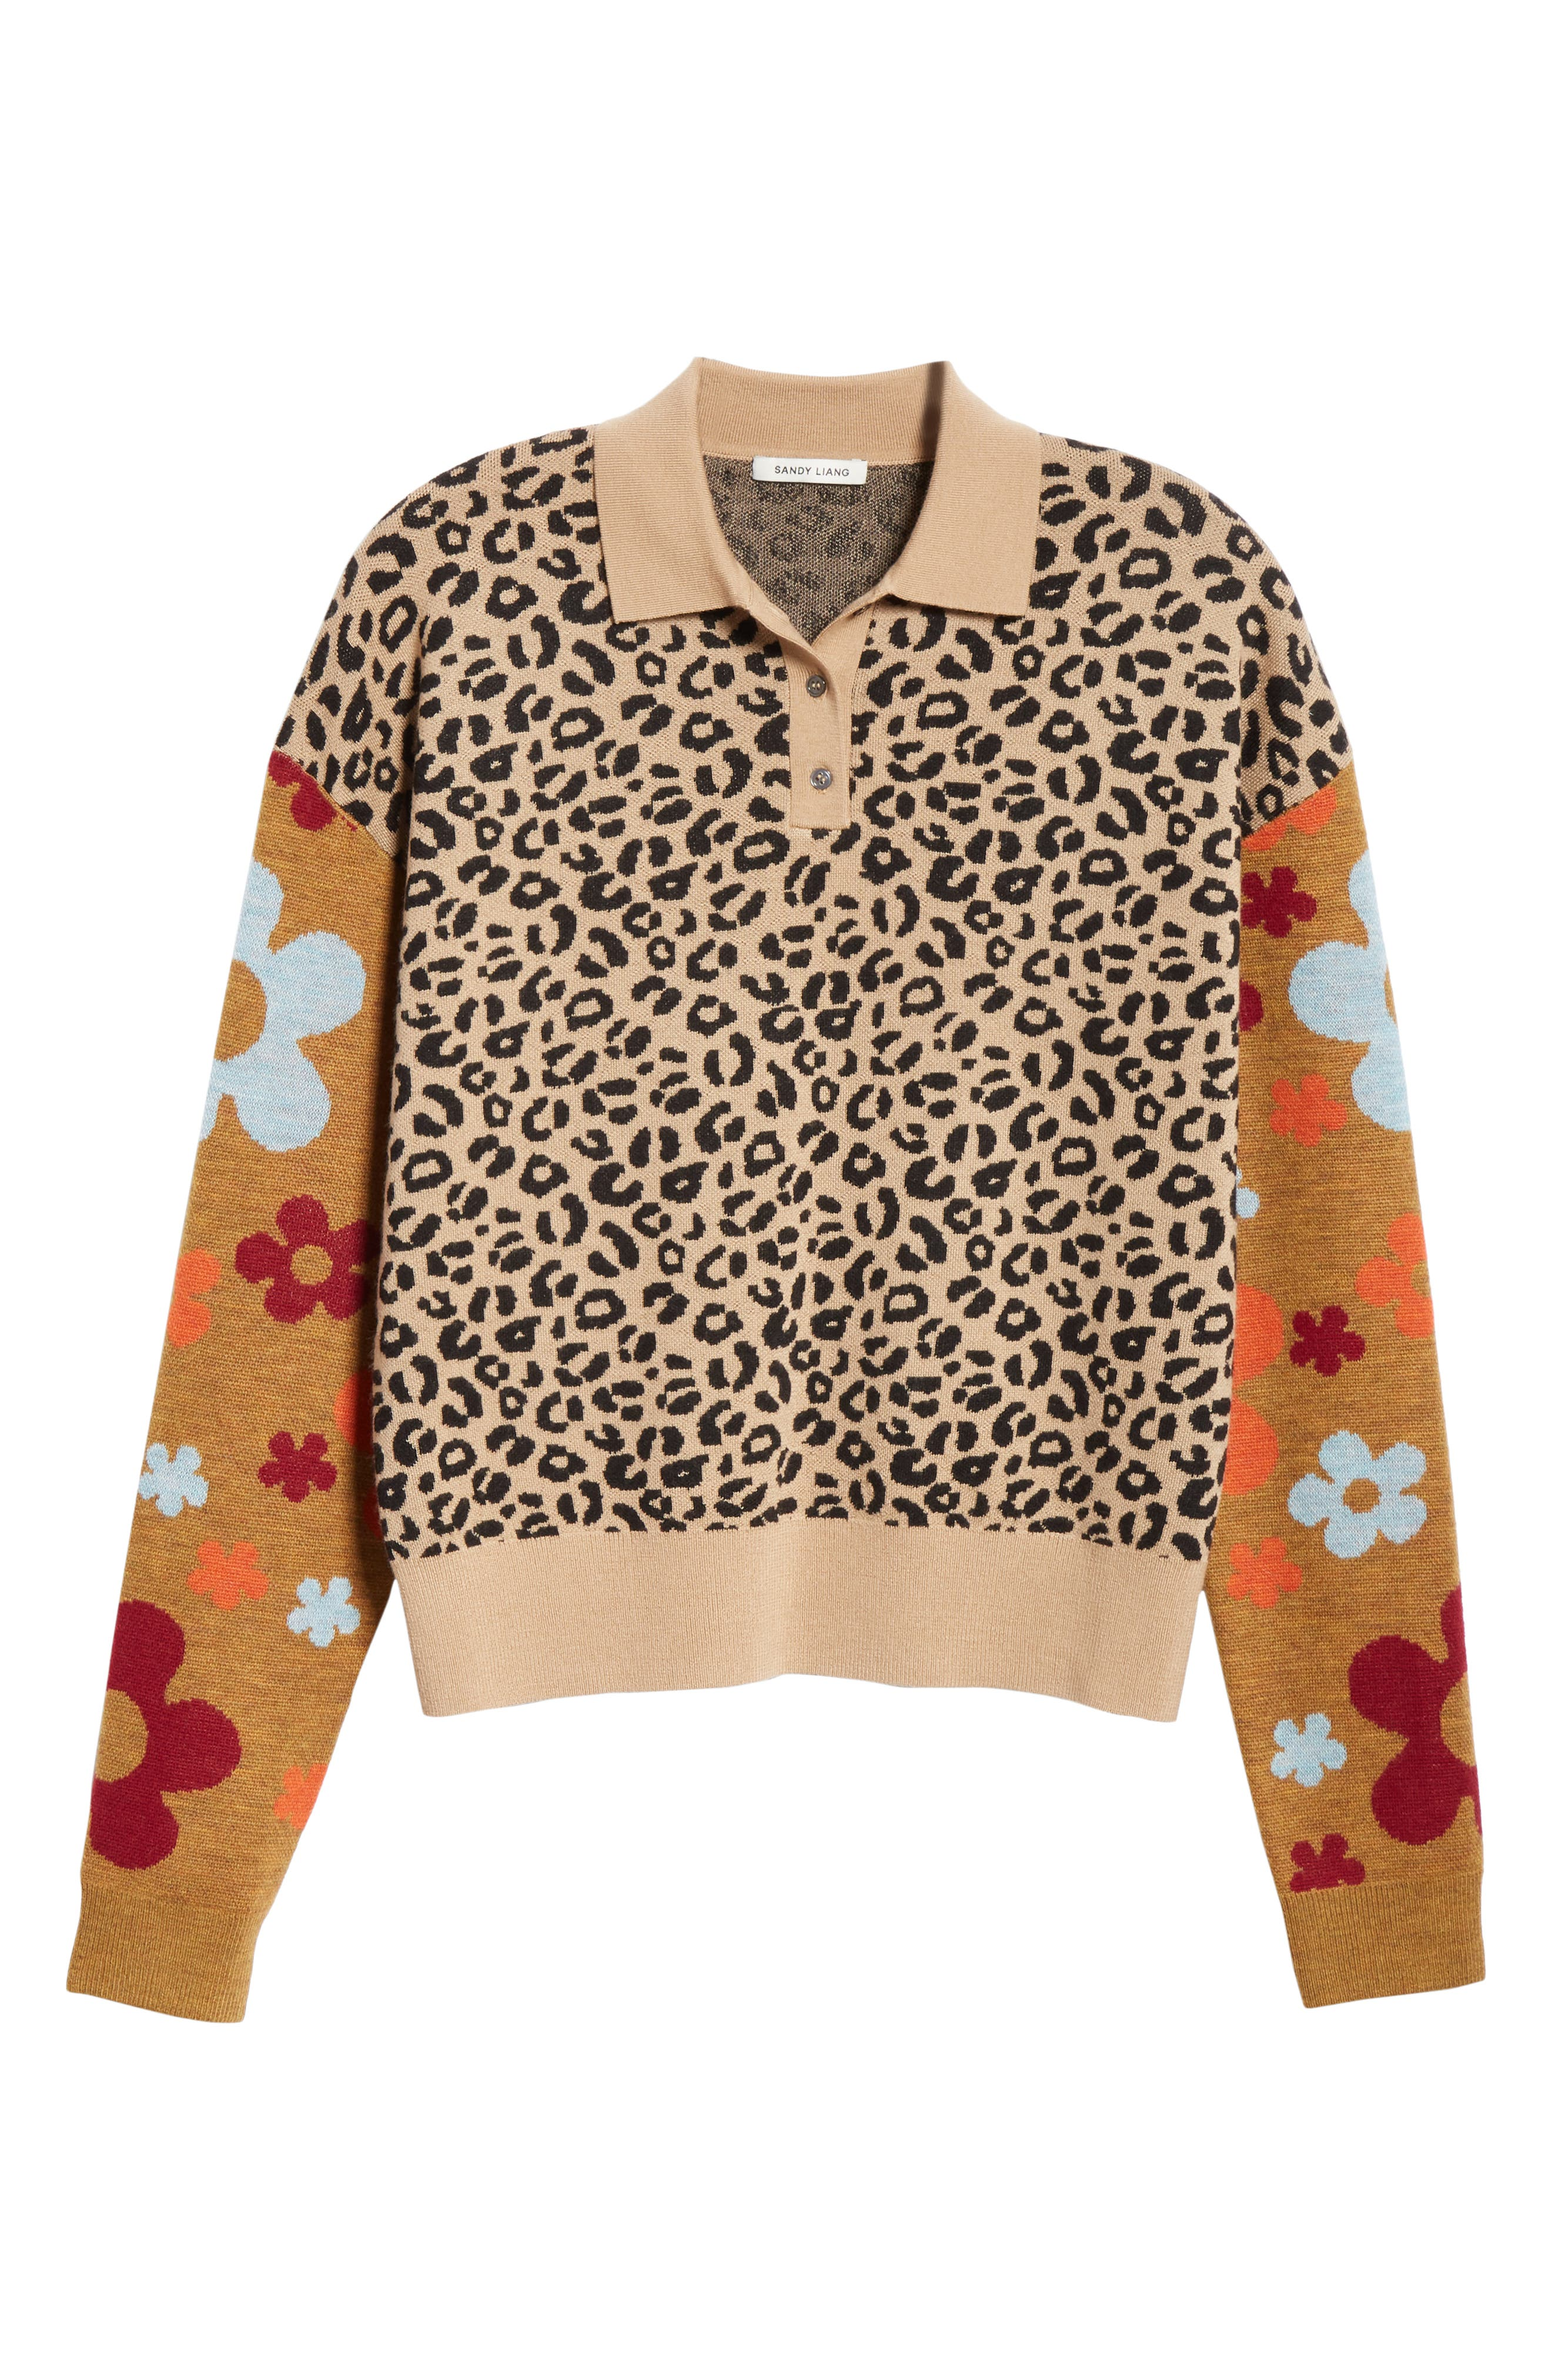 SANDY LIANG,                             Paw Paw Polo Sweater,                             Alternate thumbnail 7, color,                             LEOPARD FLORAL